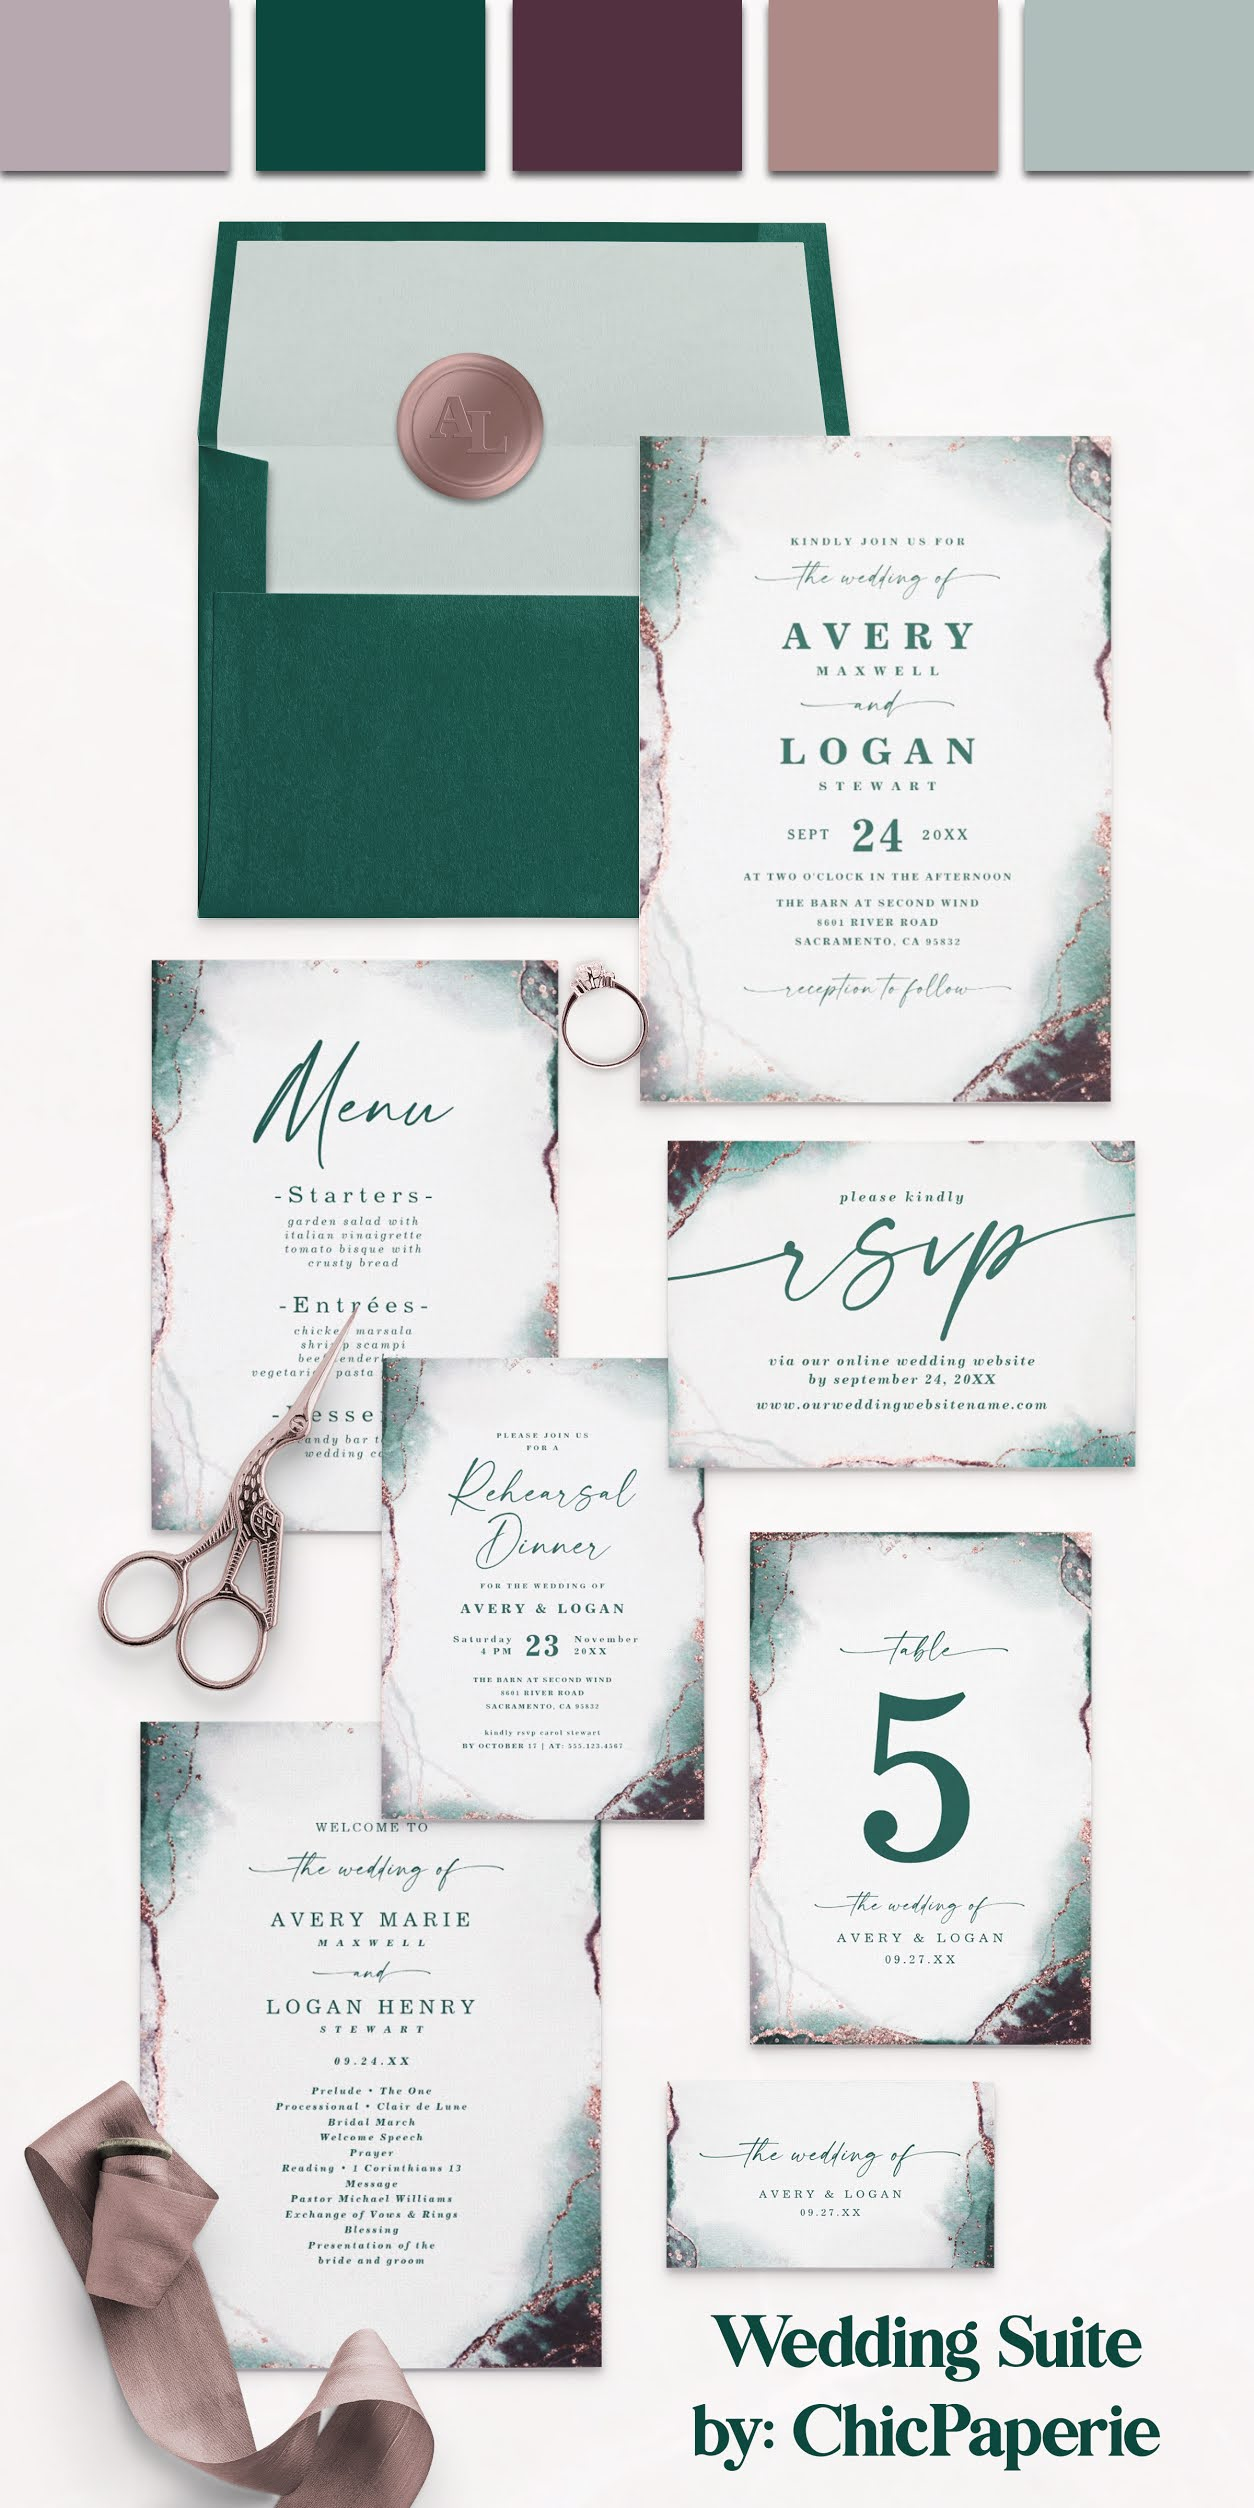 Emerald Green Abstract Ethereal Watercolor Wedding Invitation Suite: Showing Emerald Green Envelopes, Rose Gold Wax Seal Stickers, Wedding Invites, Menus, RSVP Cards, Rehearsal Dinner Invitations, Table Numbers, Wedding Programs, and Gift Registry Inserts